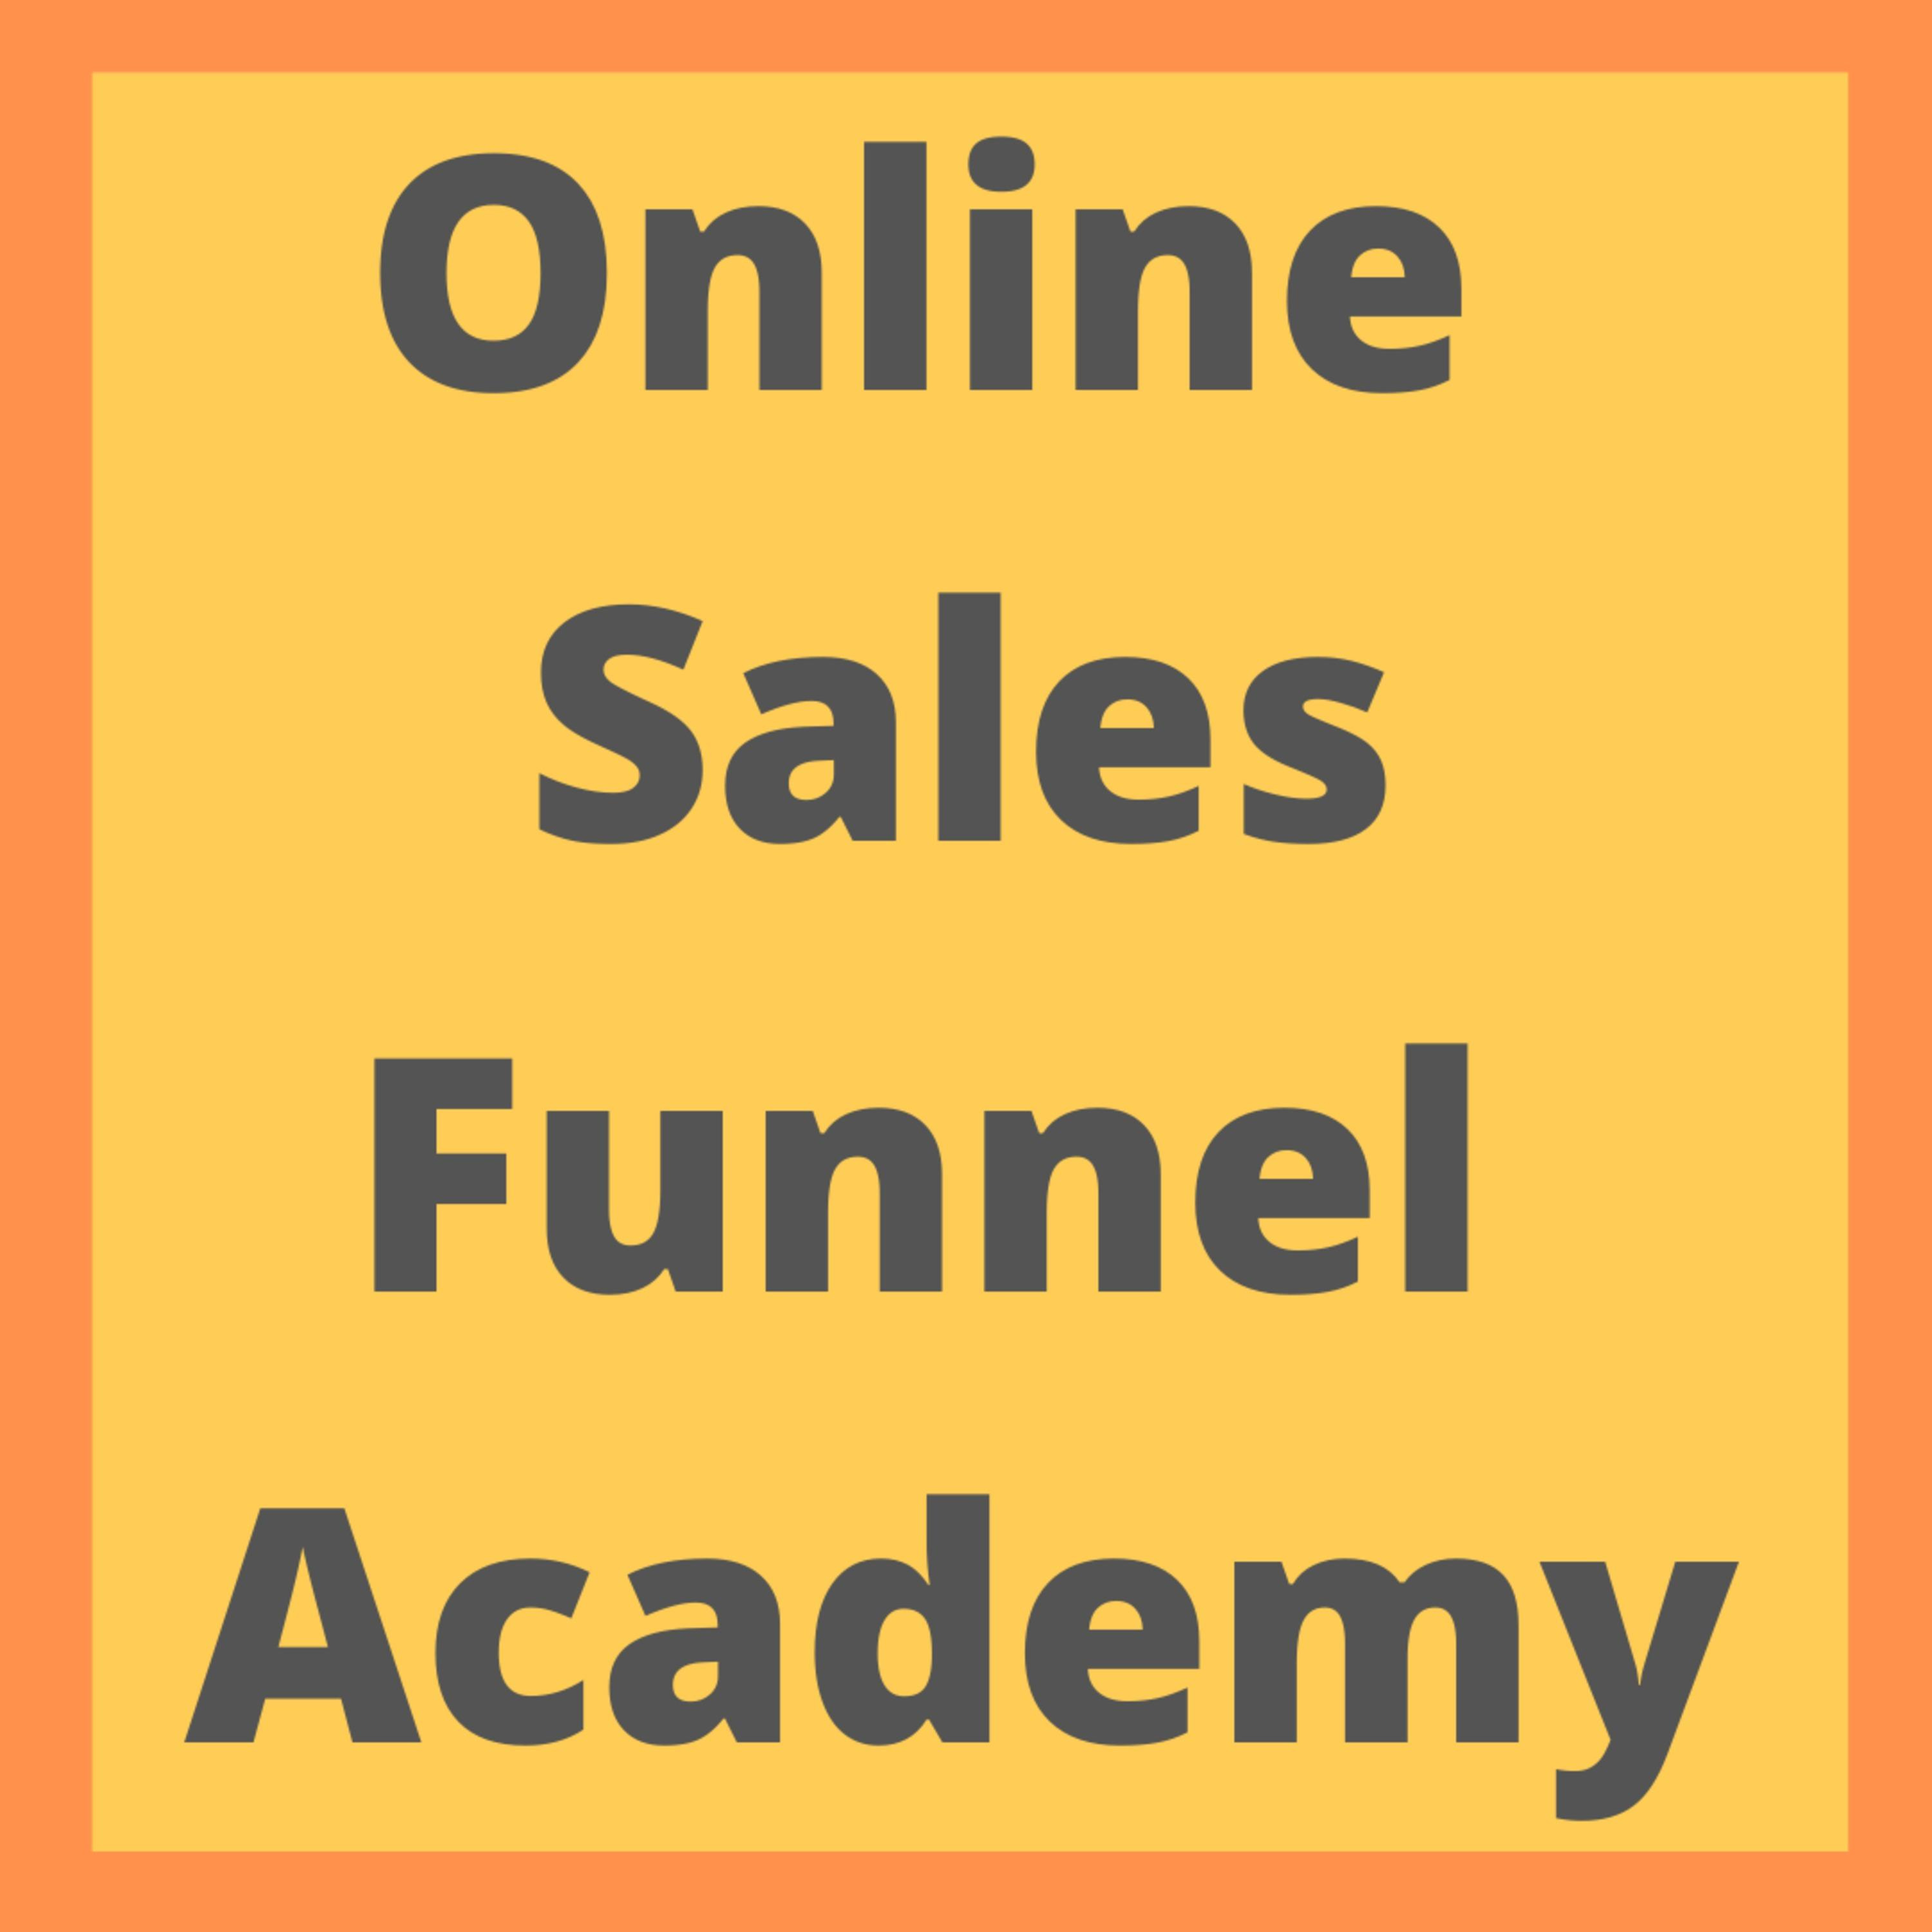 Online Sales Funnel Academy (Trailer)